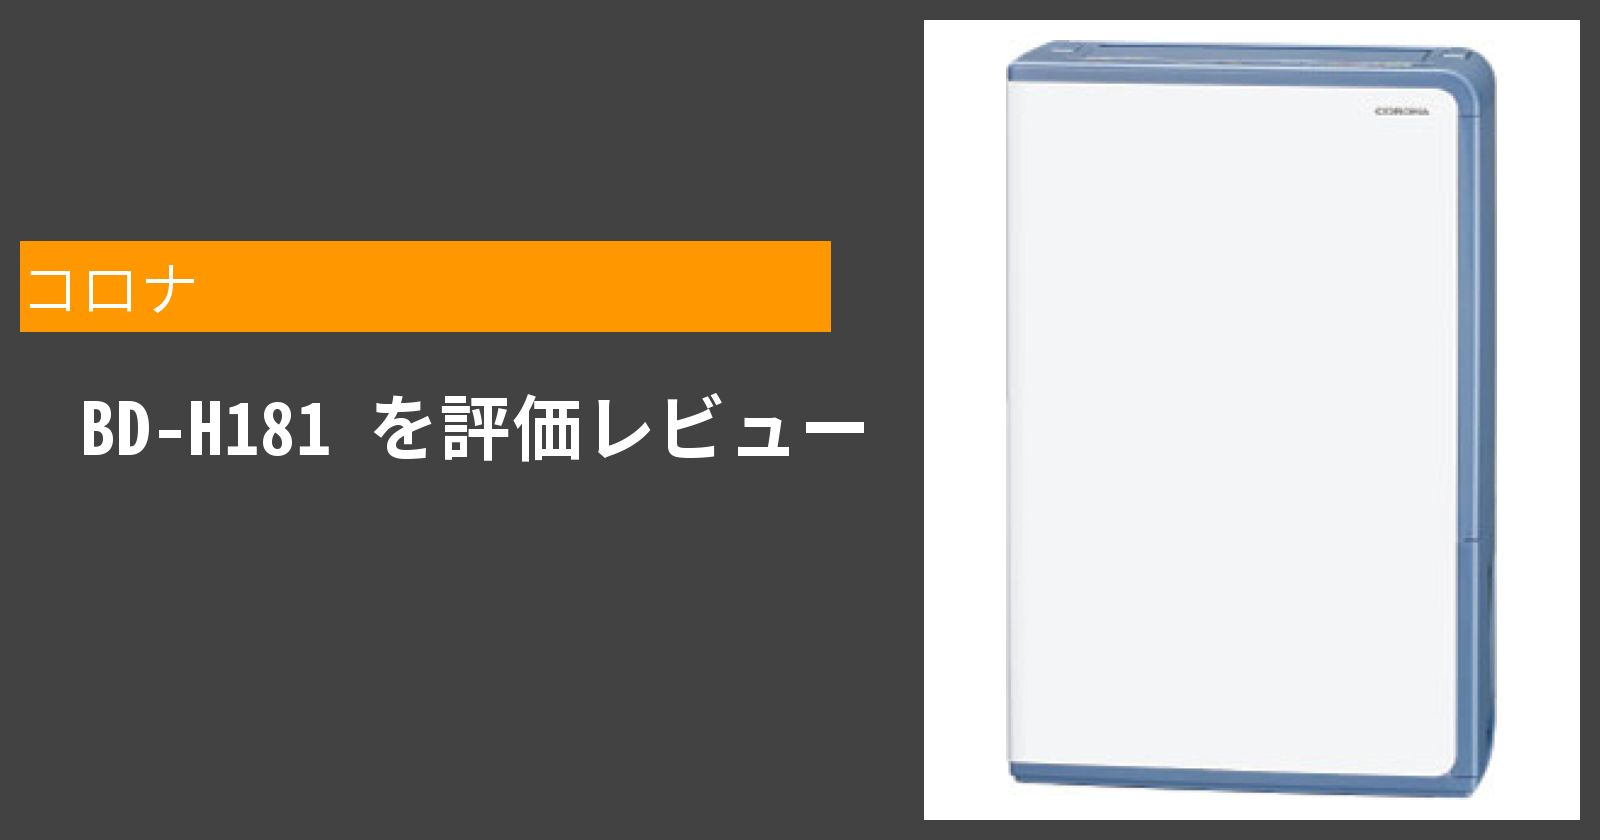 BD-H181を徹底評価